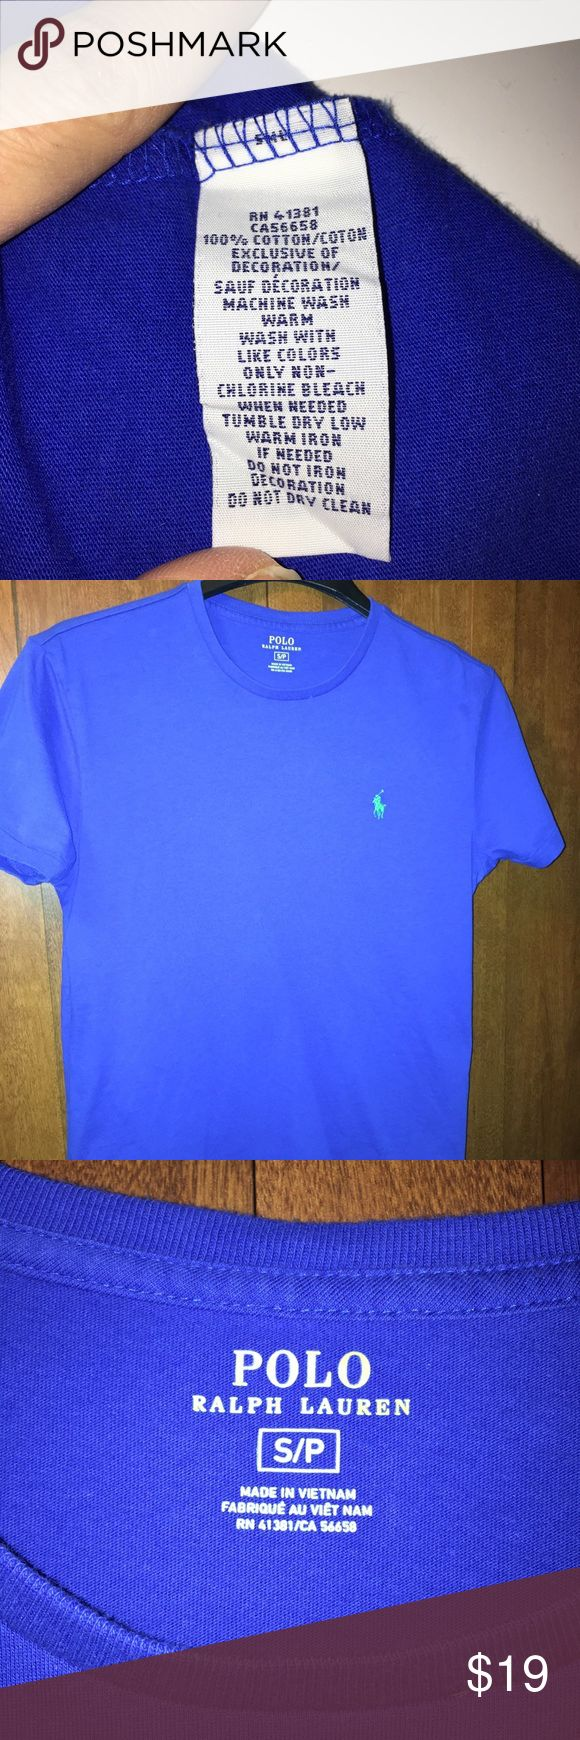 "Ralph Lauren Polo short sleeved t-shirt Men's Royal Blue short sleeve Ralph Lauren Polo t-shirt.  100% Cotton.  In very good used condition. All measurements are within 1/2"" accurate.  Length 25"". Chest 19"". Polo by Ralph Lauren Tops Tees - Short Sleeve"